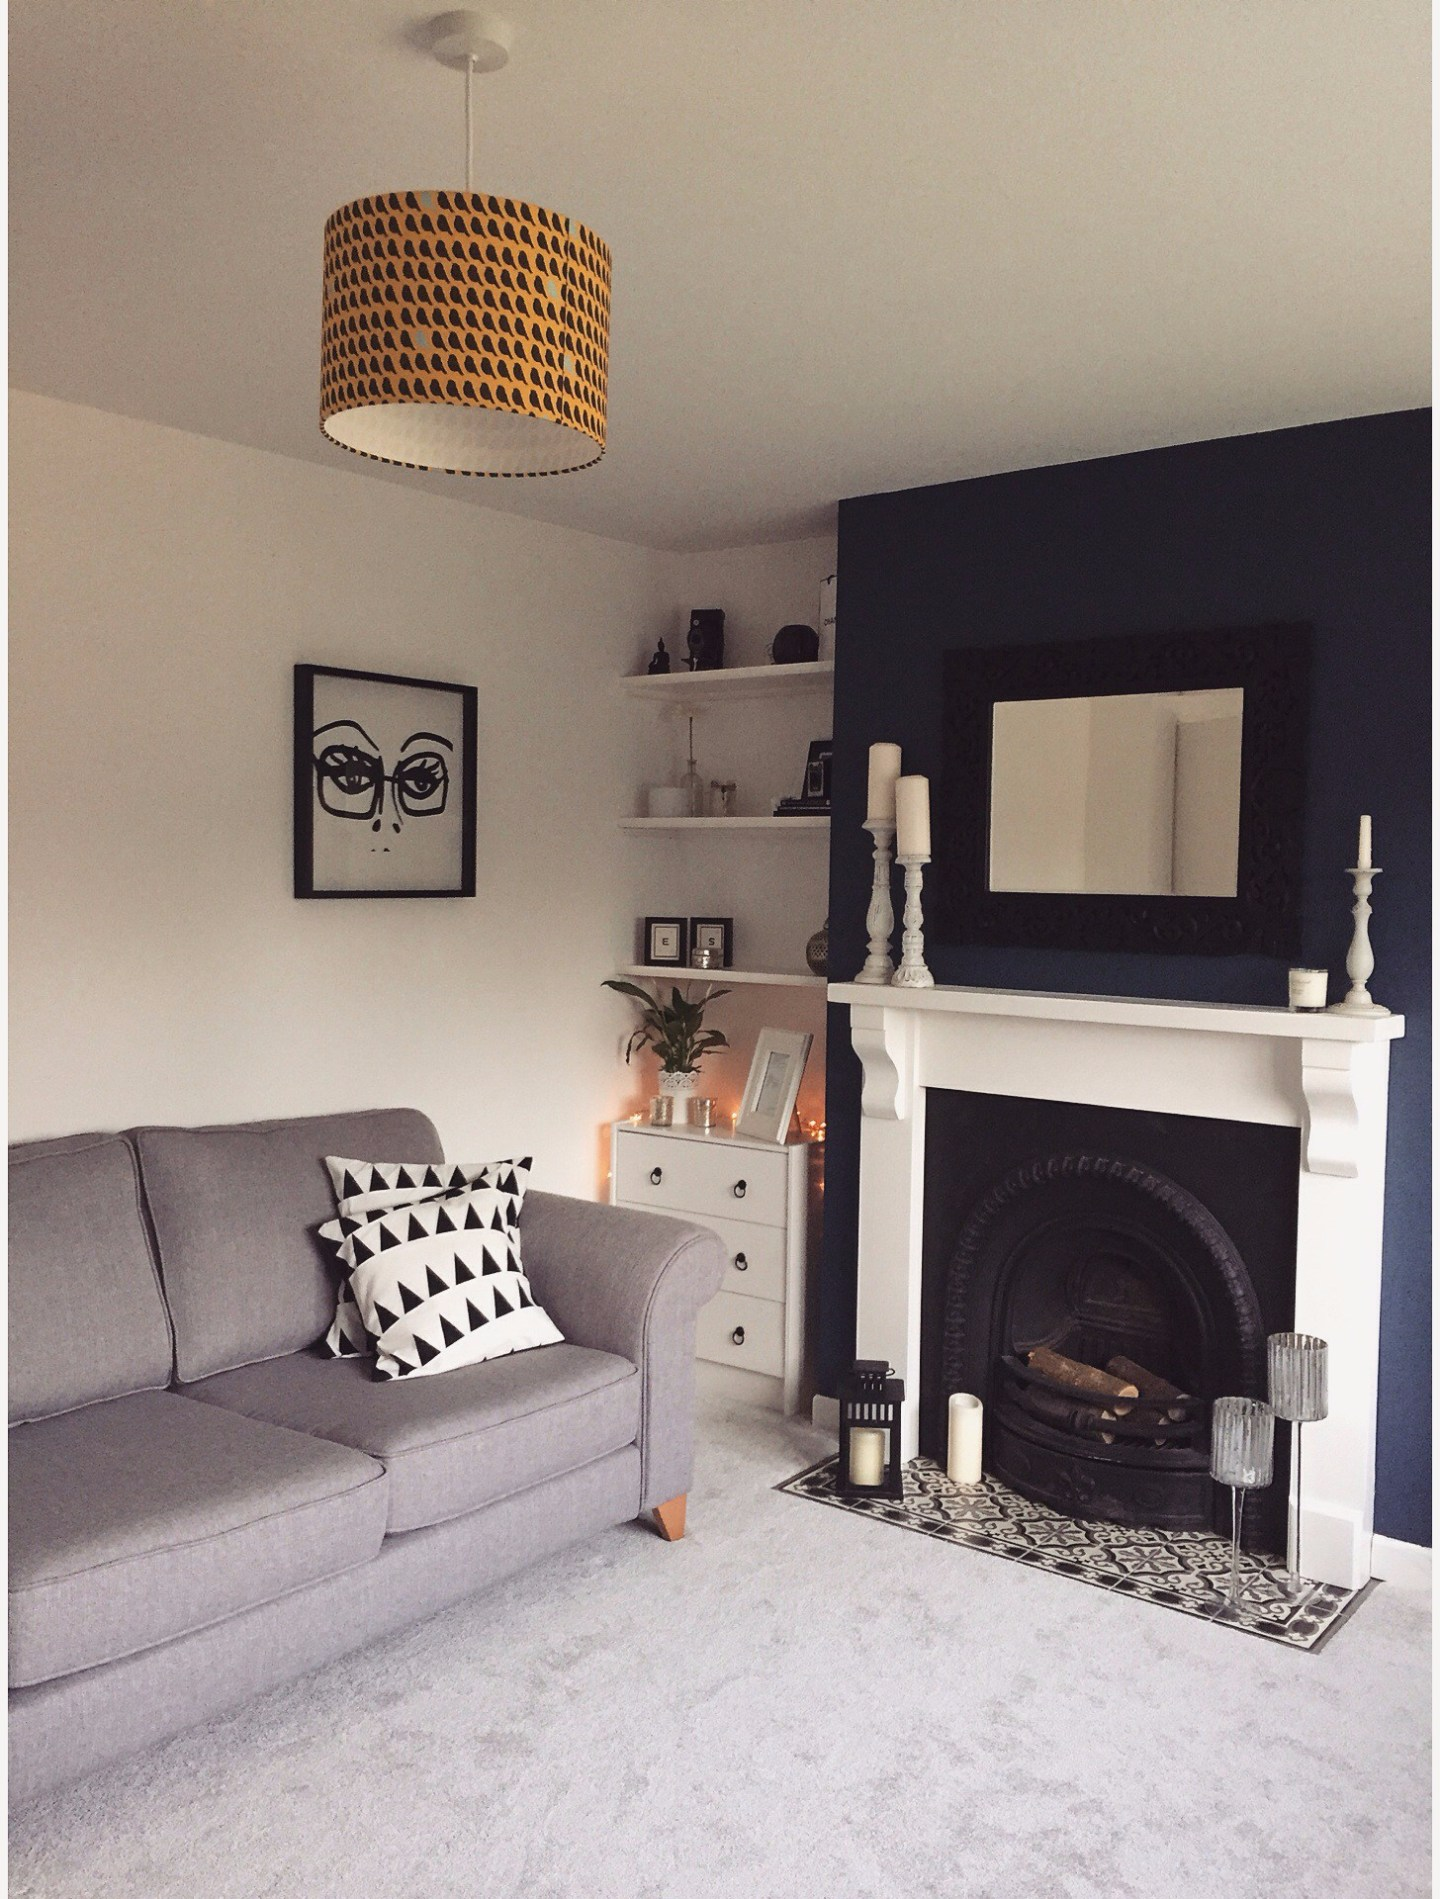 a modern living room with grey carpet and sofa, blue chimney breast, white fire surround and yellow lampshade